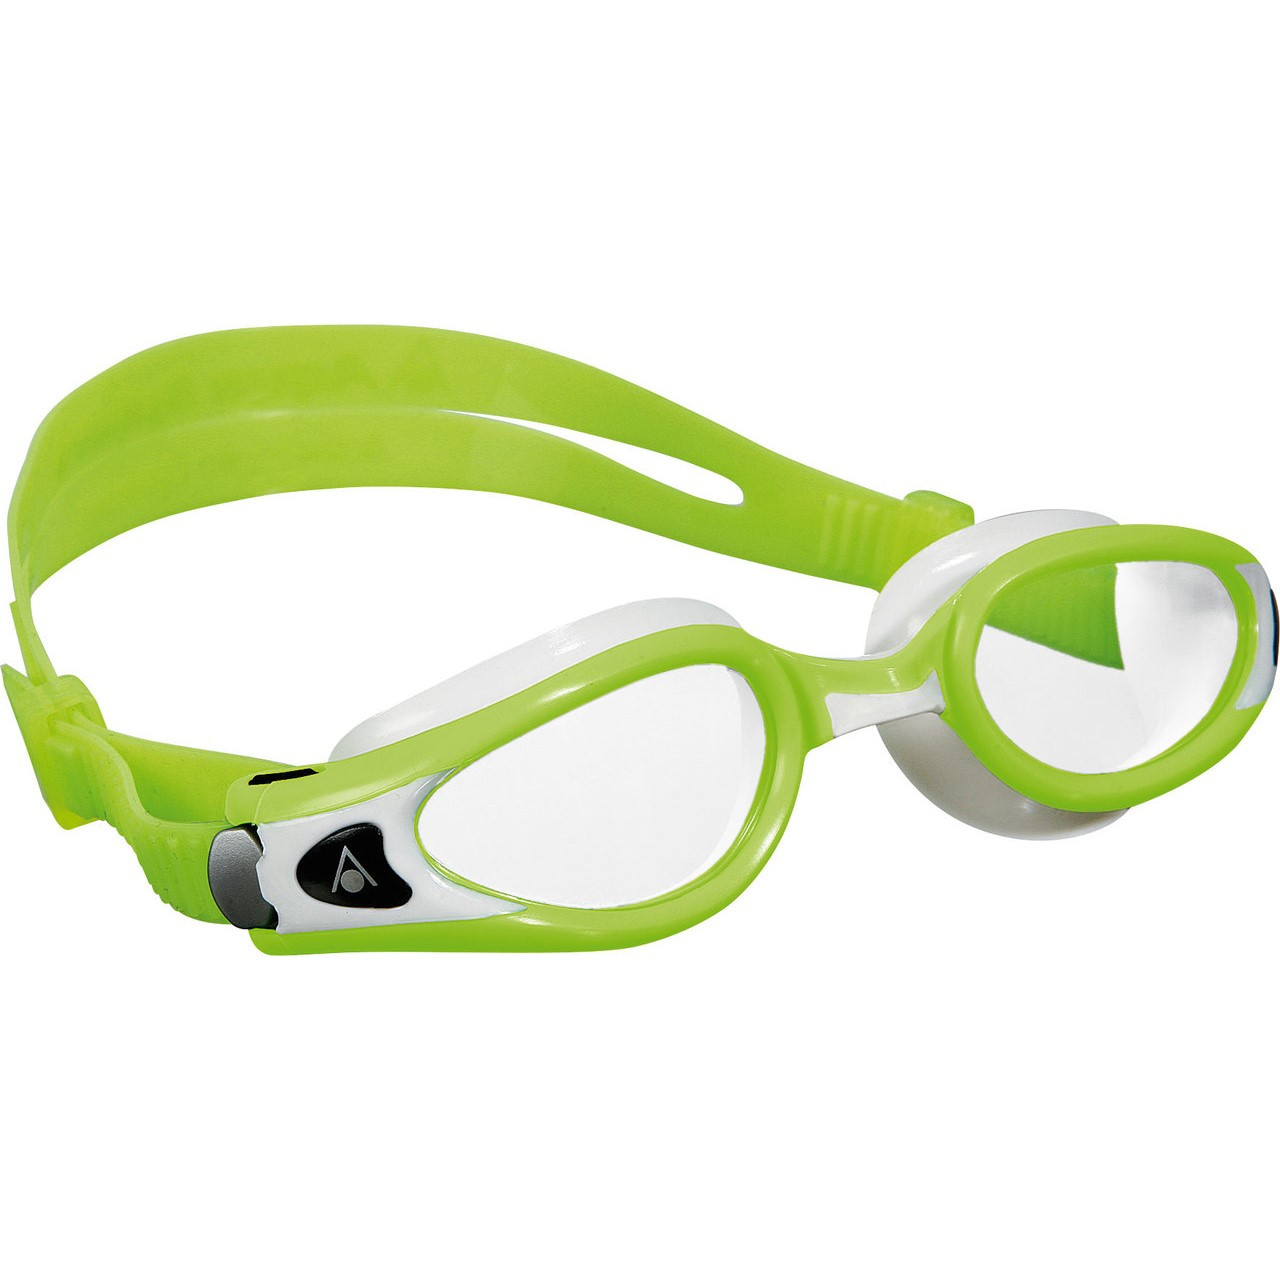 Aqua Sphere Kaiman EXO Goggle with Clear Lens for Smaller Faces - 2017 price